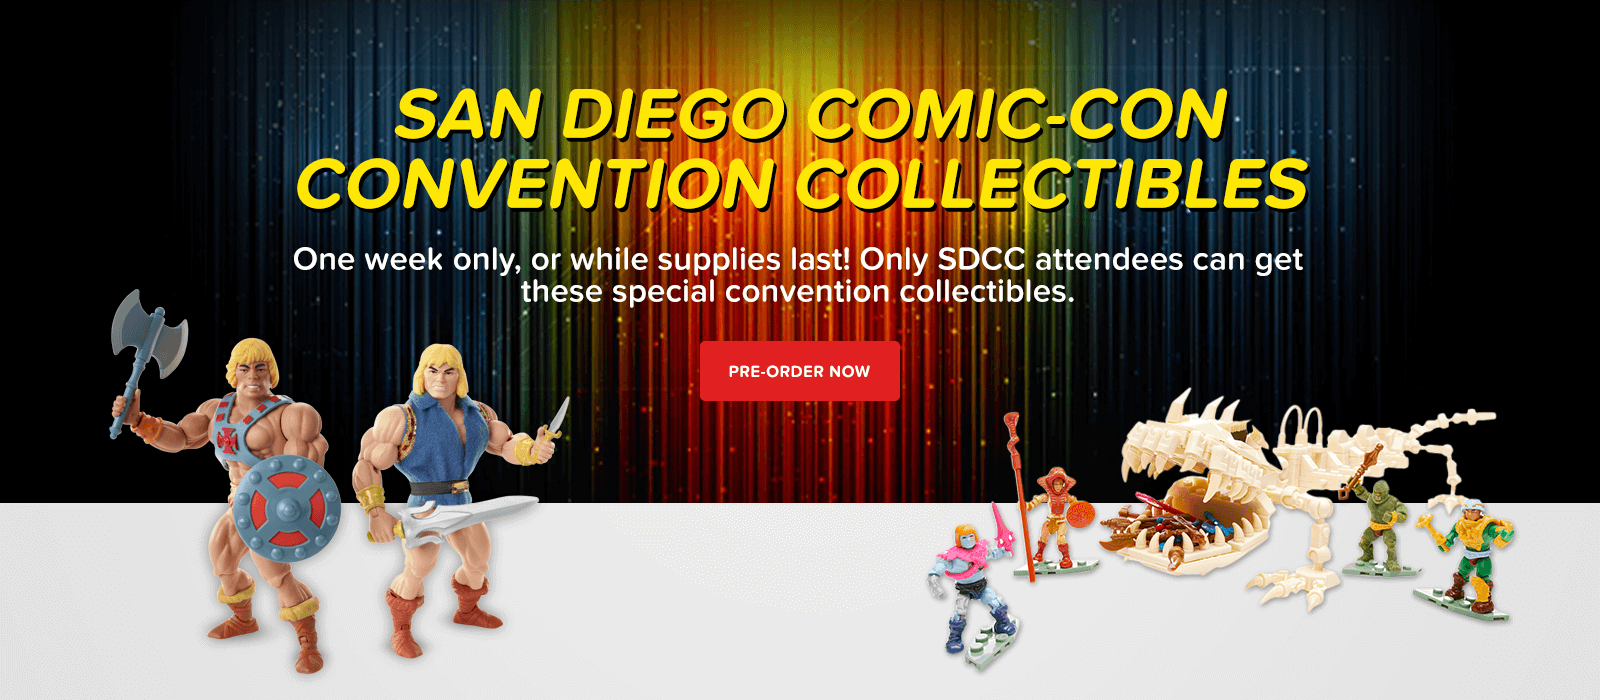 San Diego Comic-Con Convention Collectibles